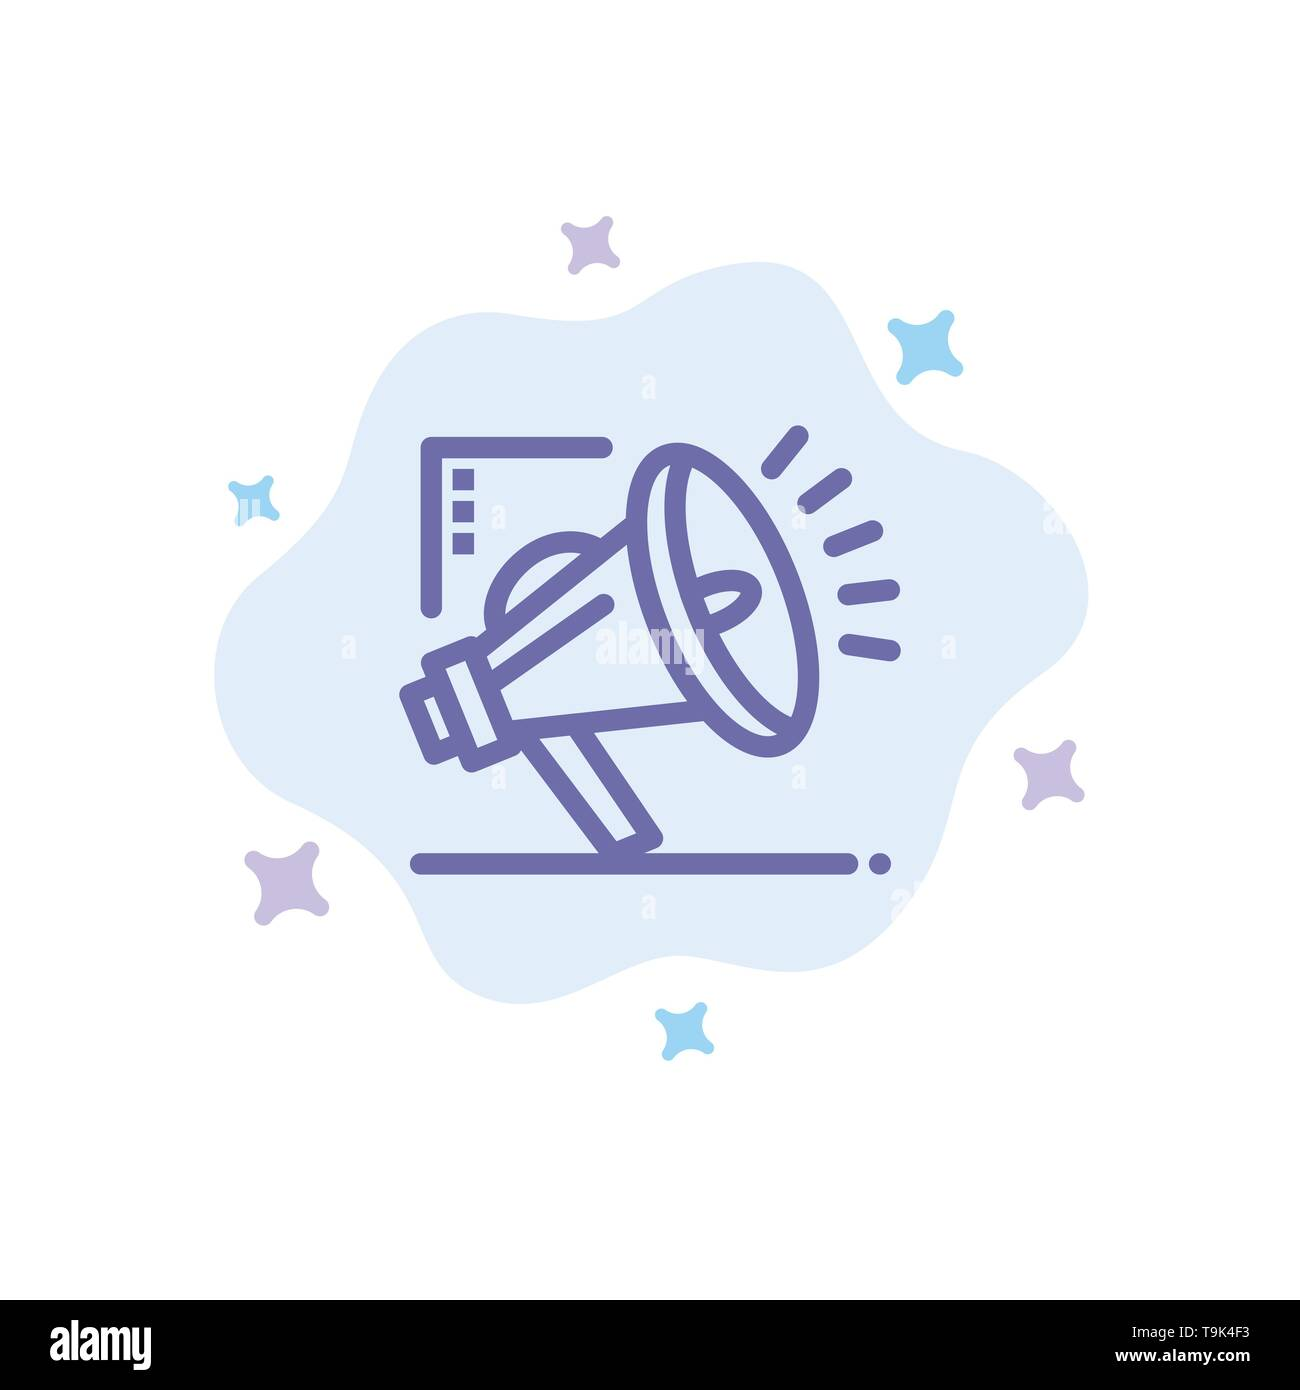 Marketing, Automation, Marketing Automation, Digital Blue Icon on Abstract Cloud Background Stock Vector